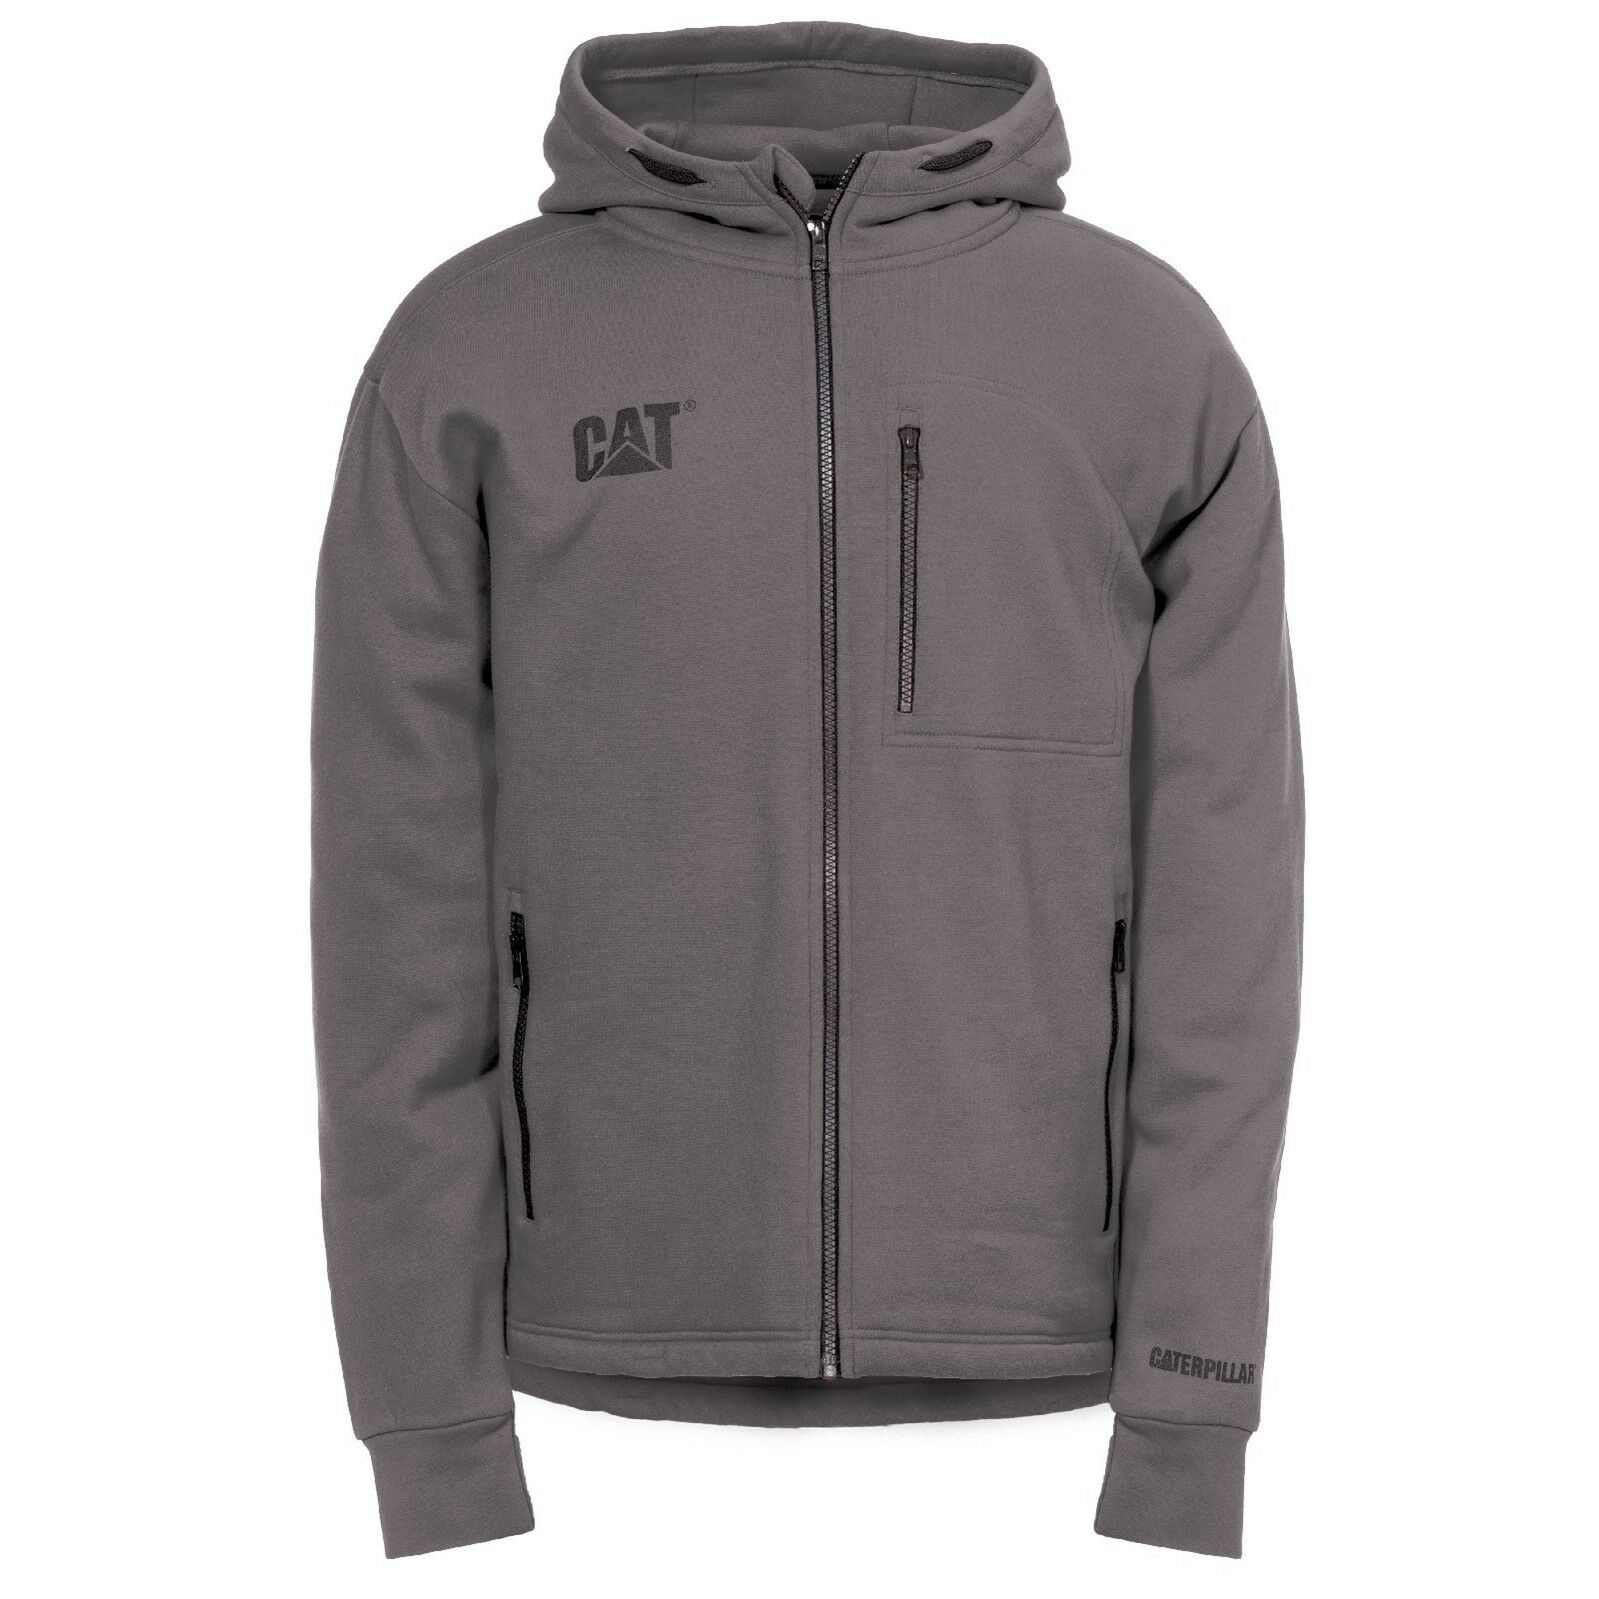 Caterpillar Drop Tail Sweat - Work Work Work Hoody - C1910060 | Vorzüglich